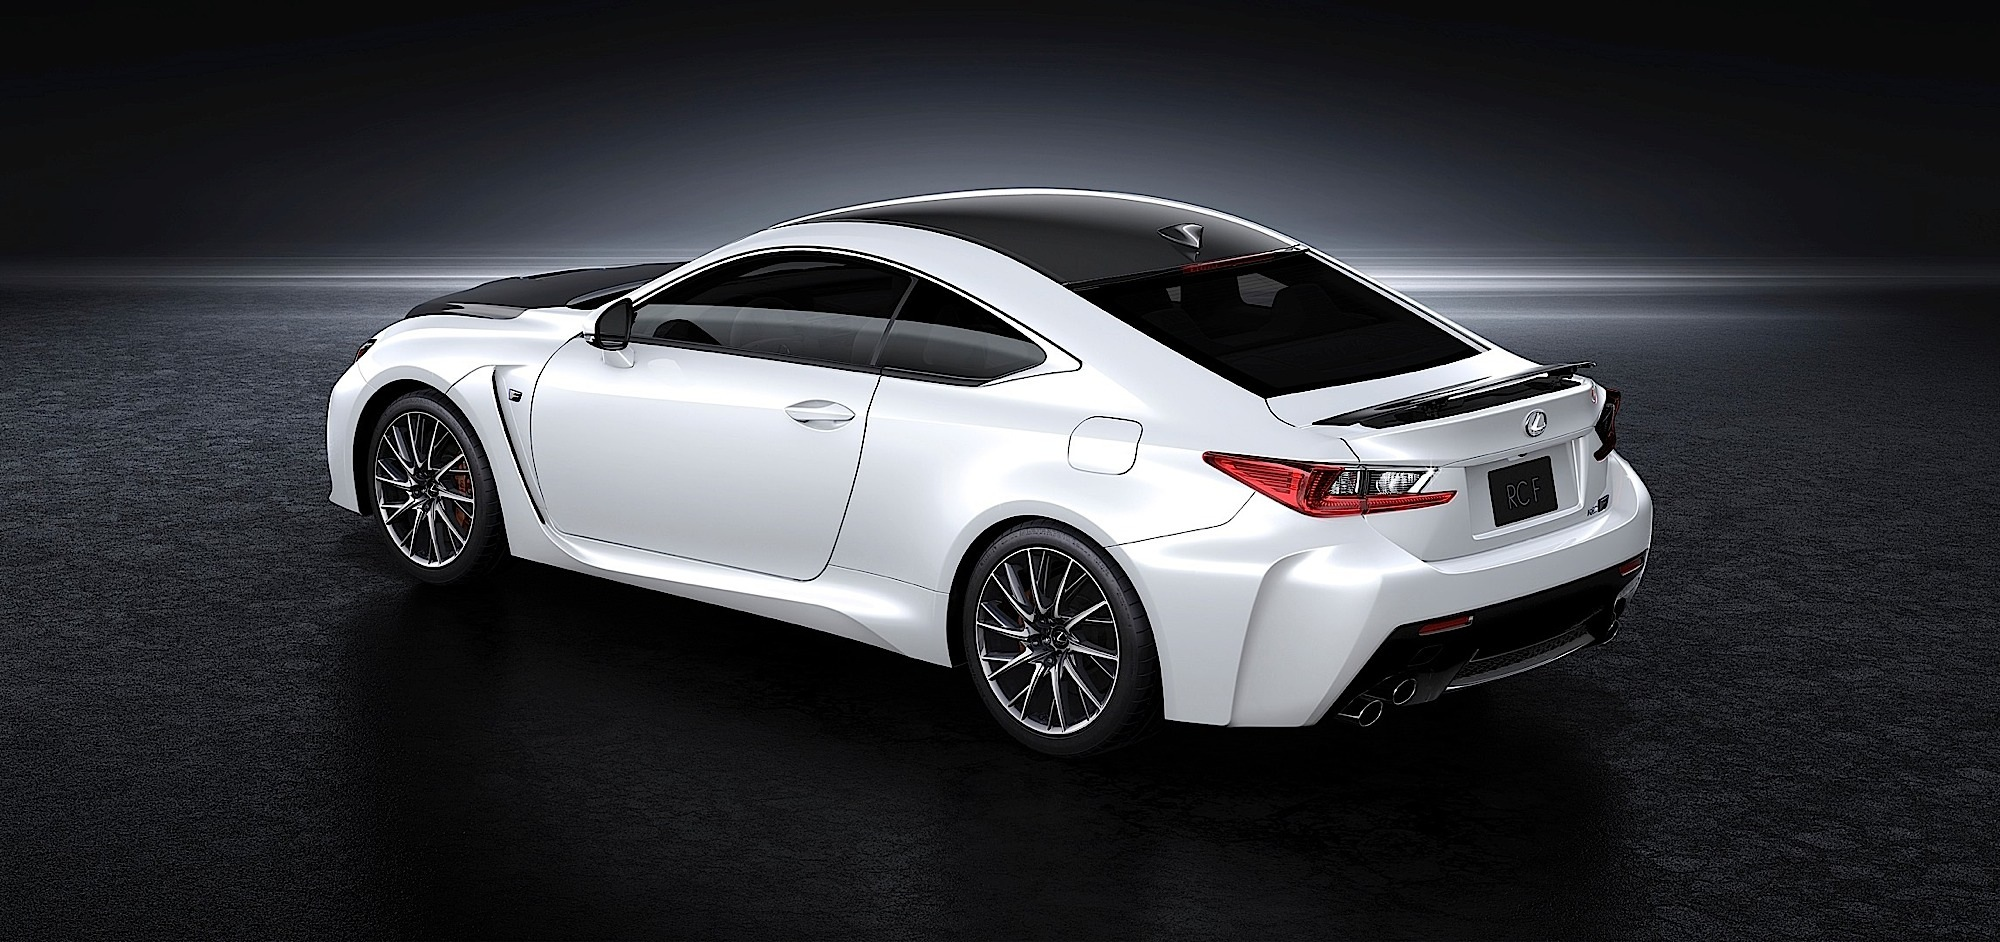 2014 - [Lexus] RC Coupé / RC-F - Page 5 Lexus-rc-f-looking-awesome-in-white_3